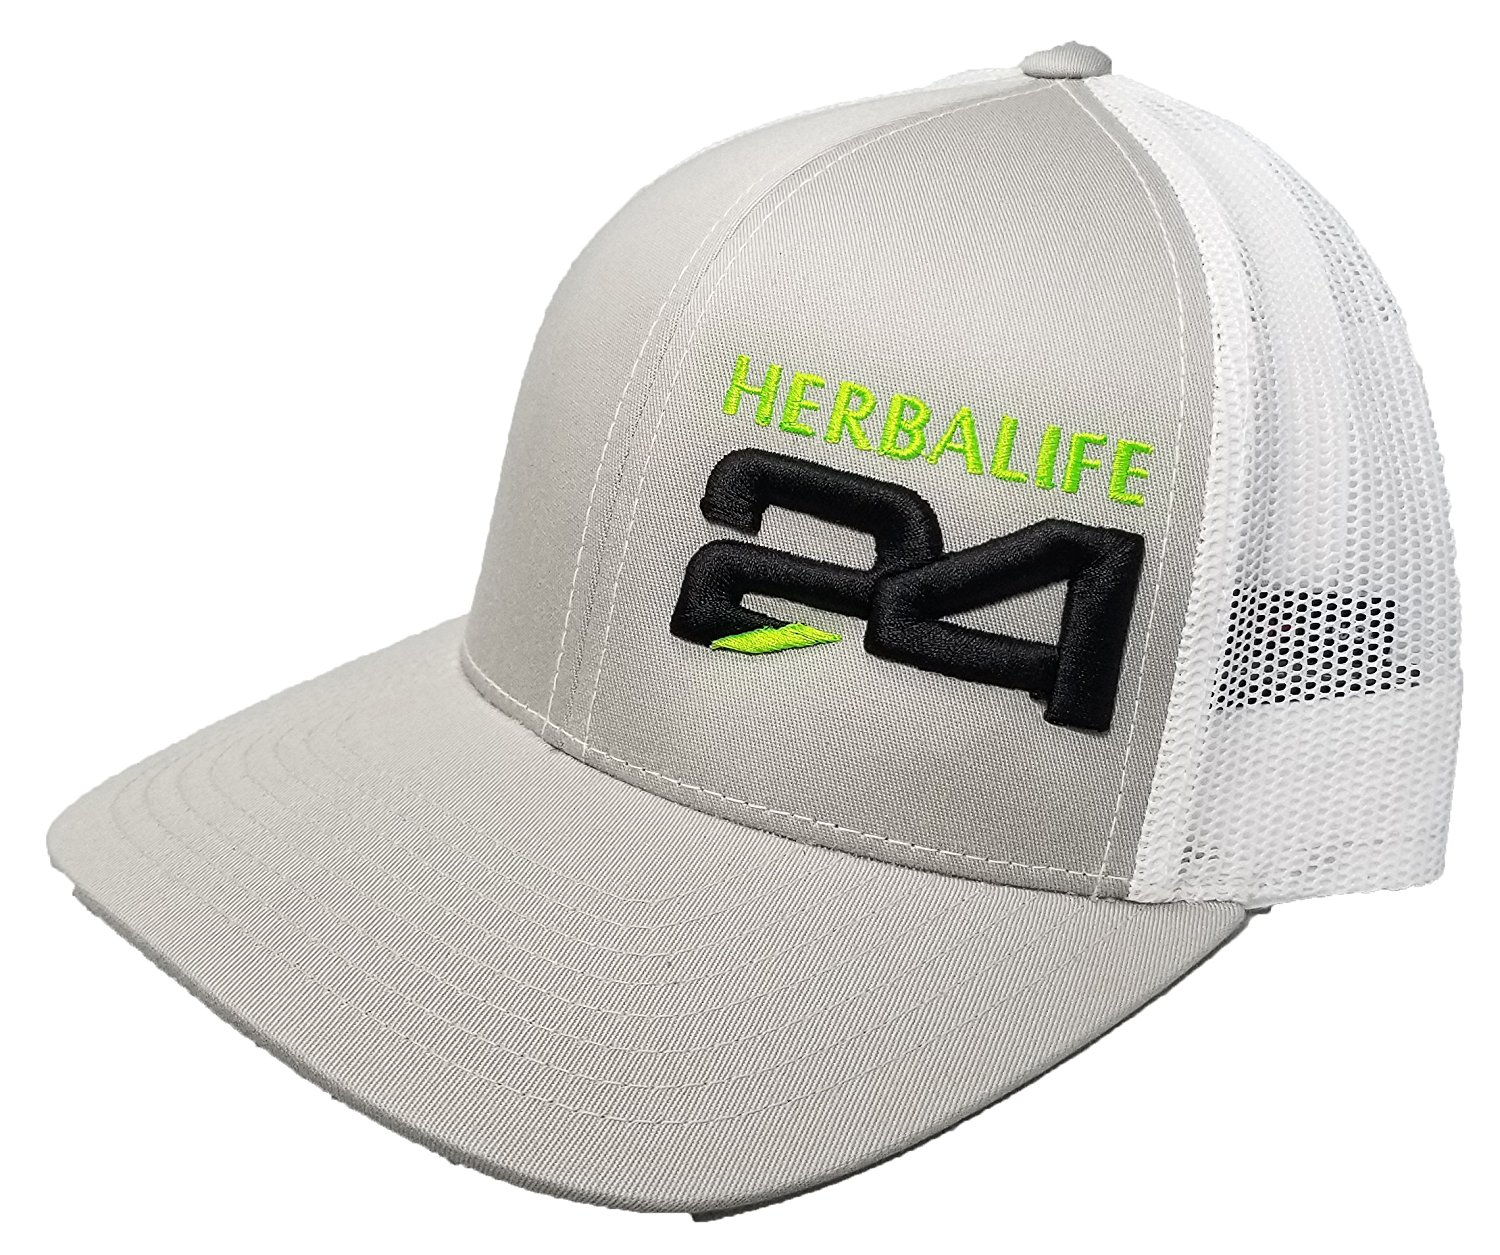 0634ceea6b7 Get Quotations · Richardson 3D Puff Herbalife 24FIT Hat Cap Snapback  Adjustable Adult Unisex